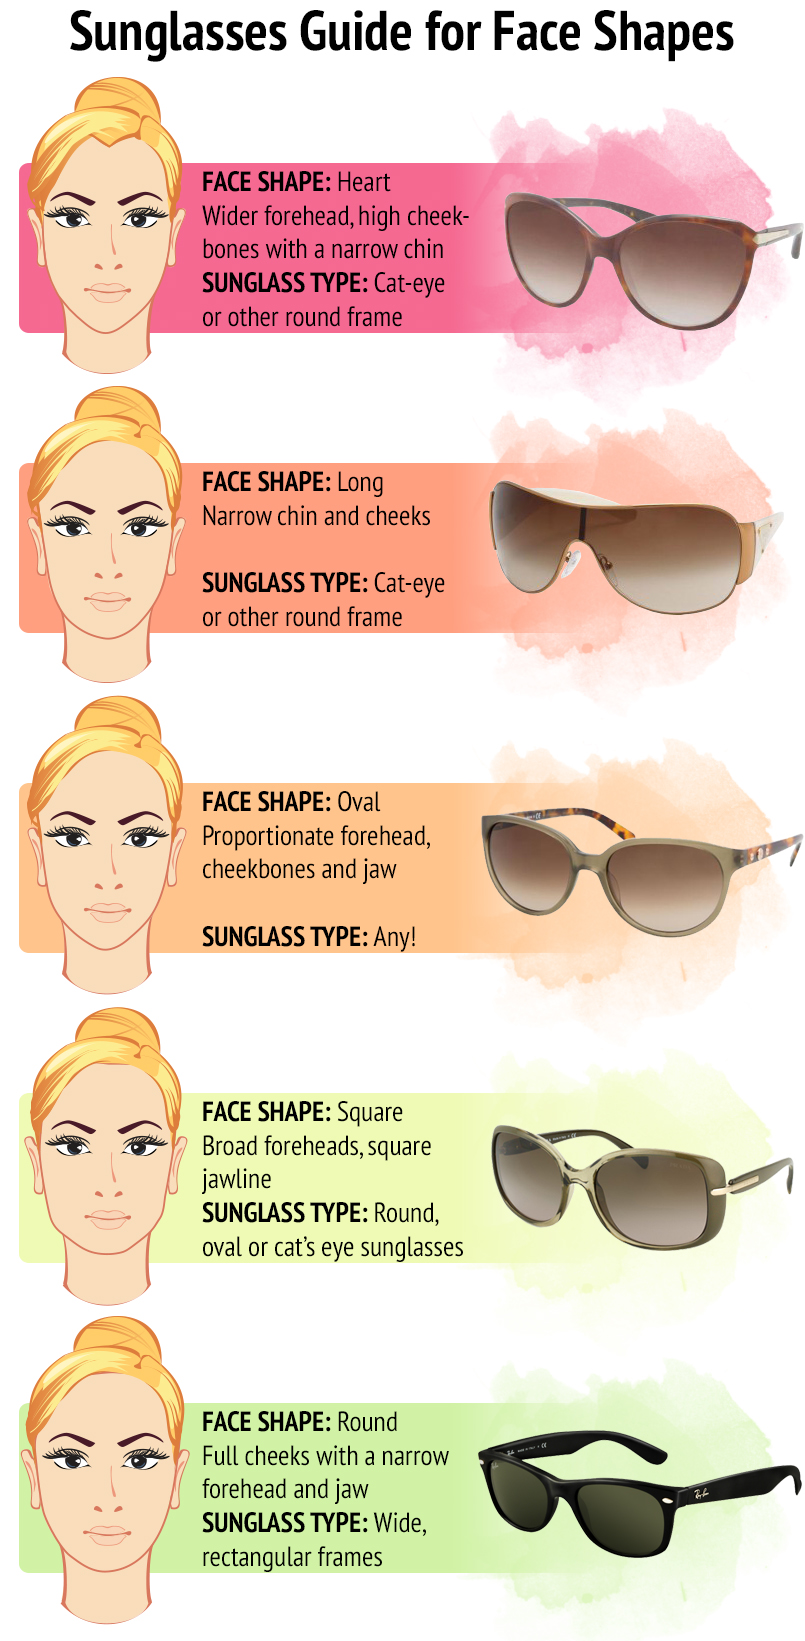 d6f09f15e0 Sunglasses Guide for Face Shapes